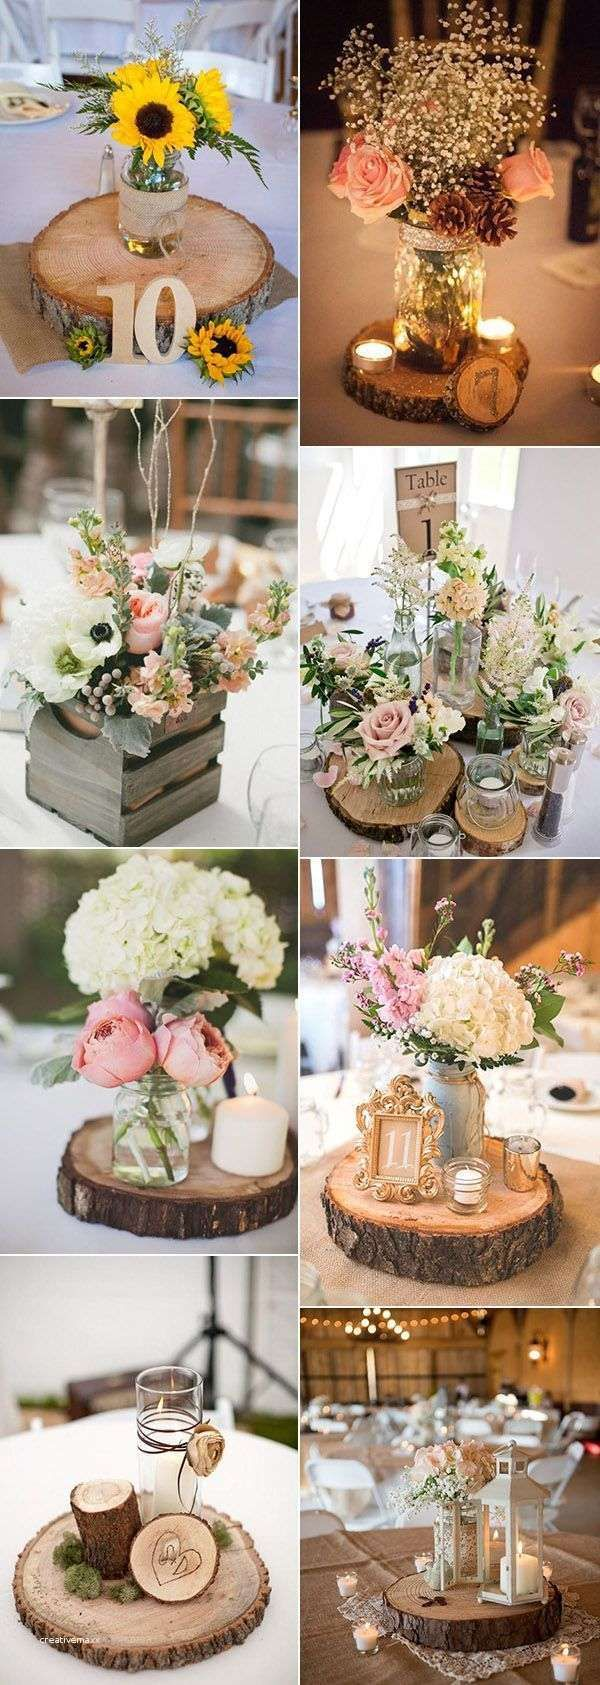 wedding decorations for tables best 25 fall wedding centerpieces ideas on 9117